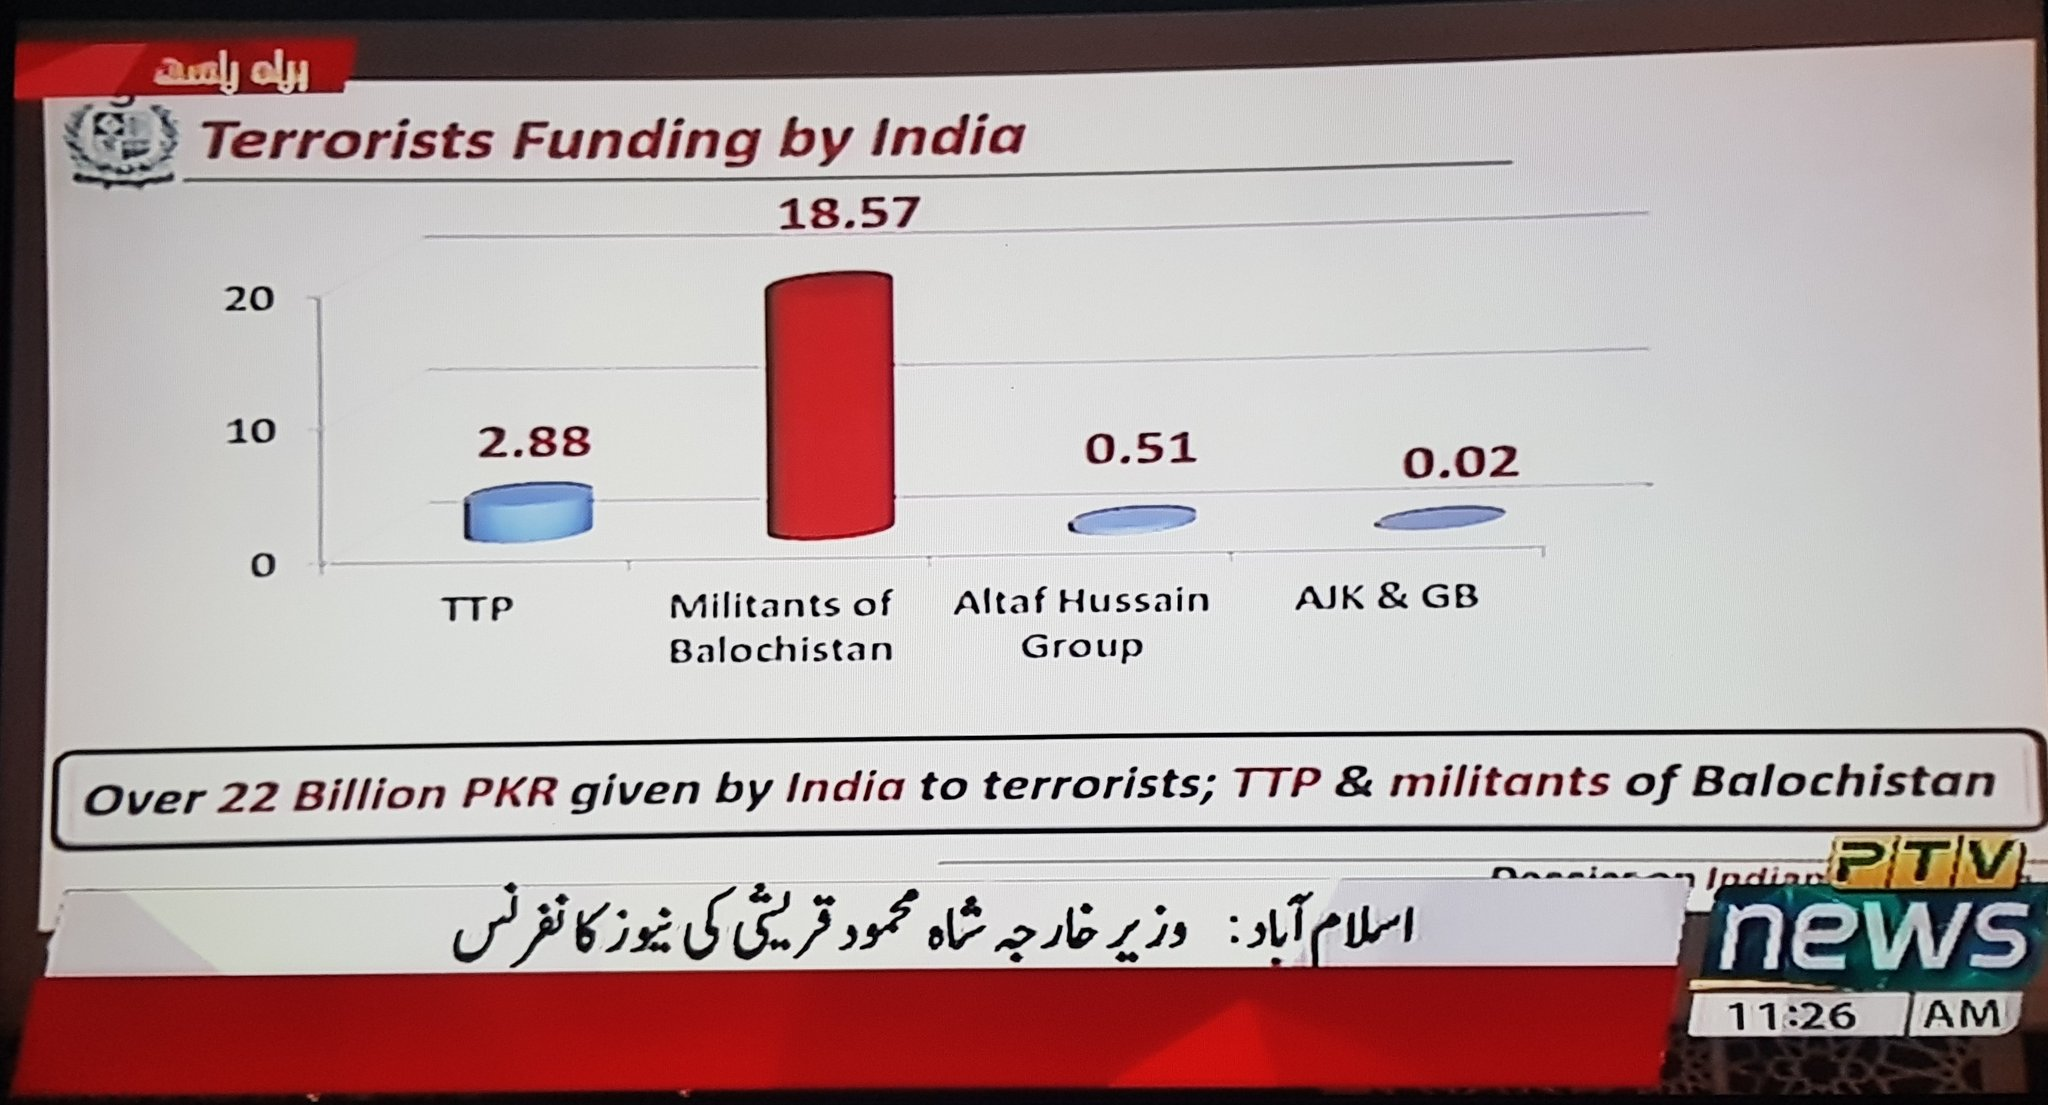 funding by India